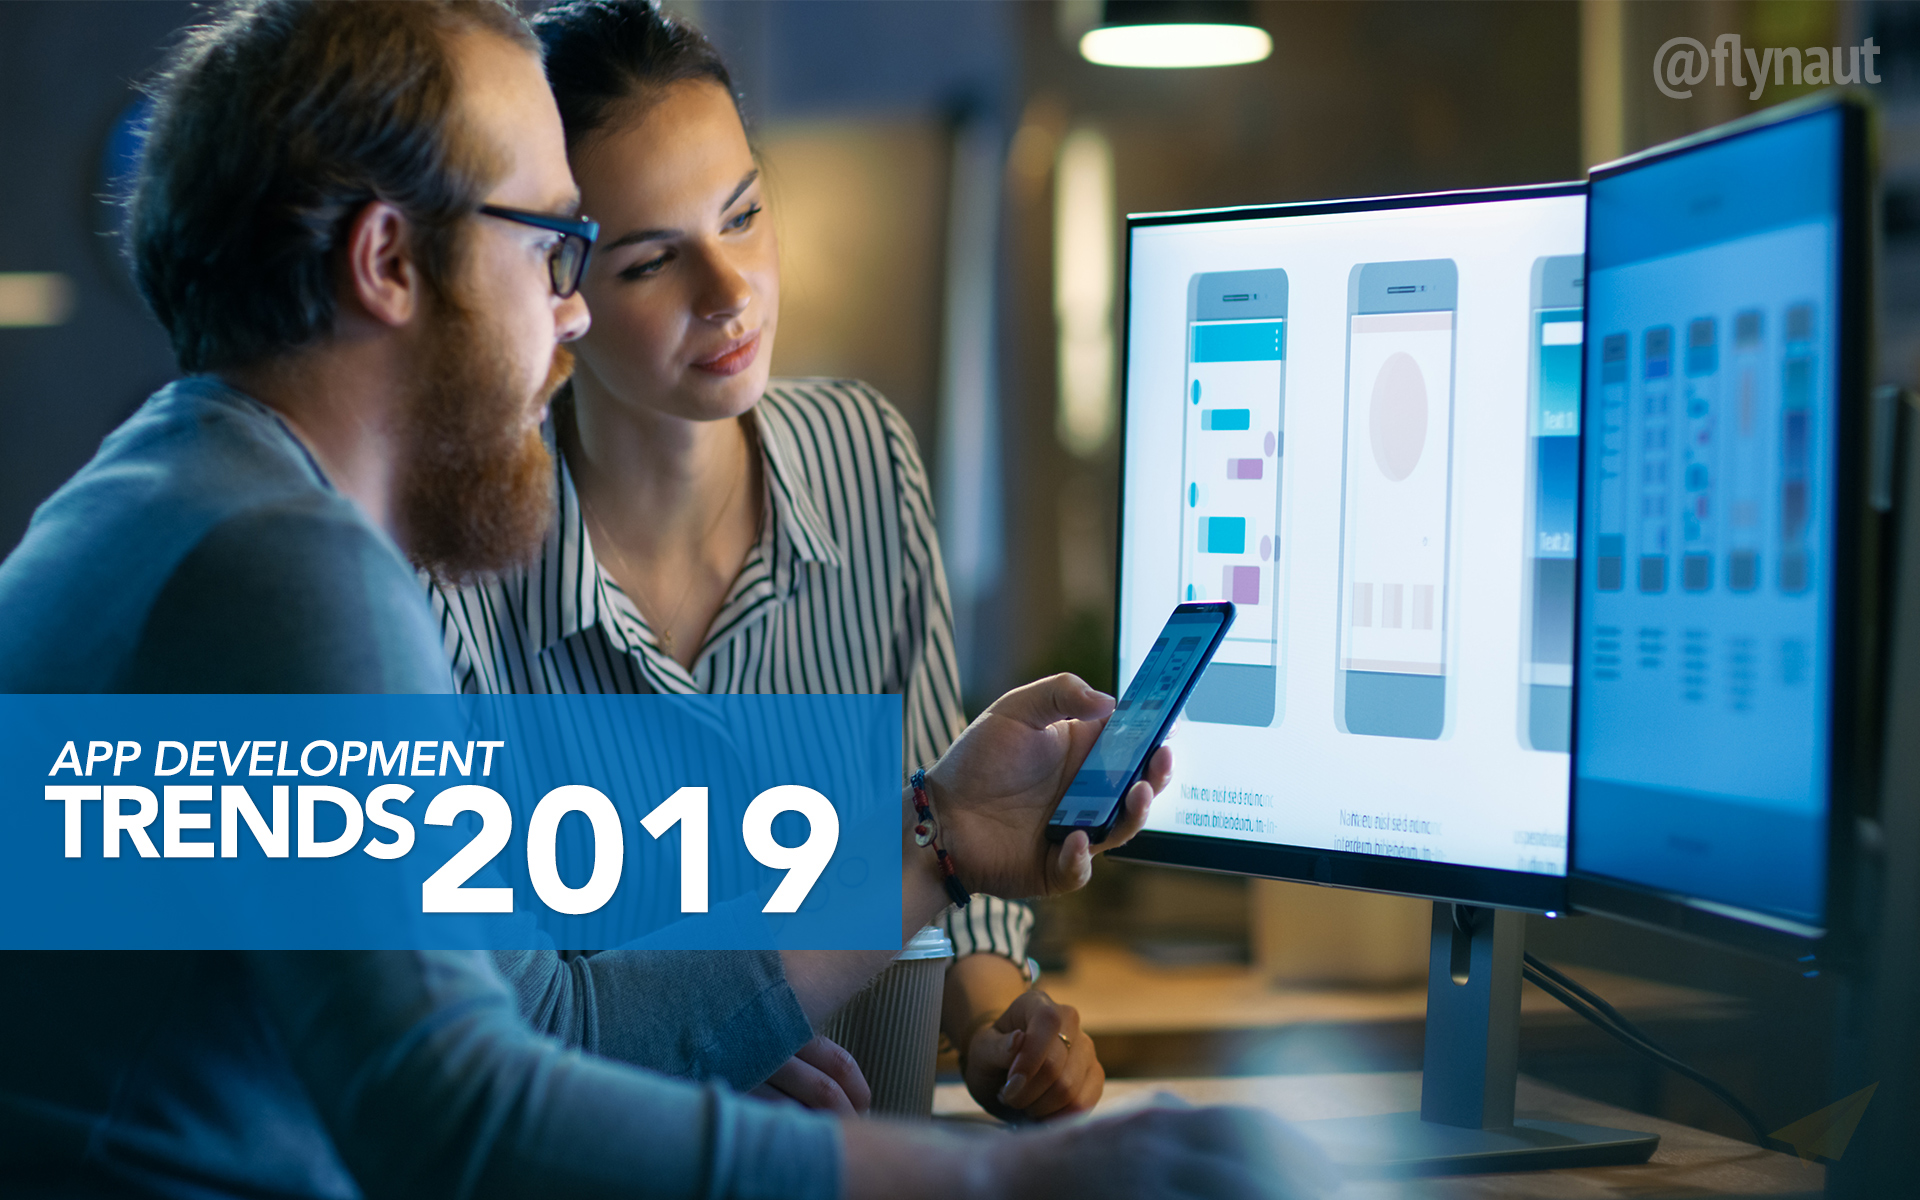 App Development Trends for 2019